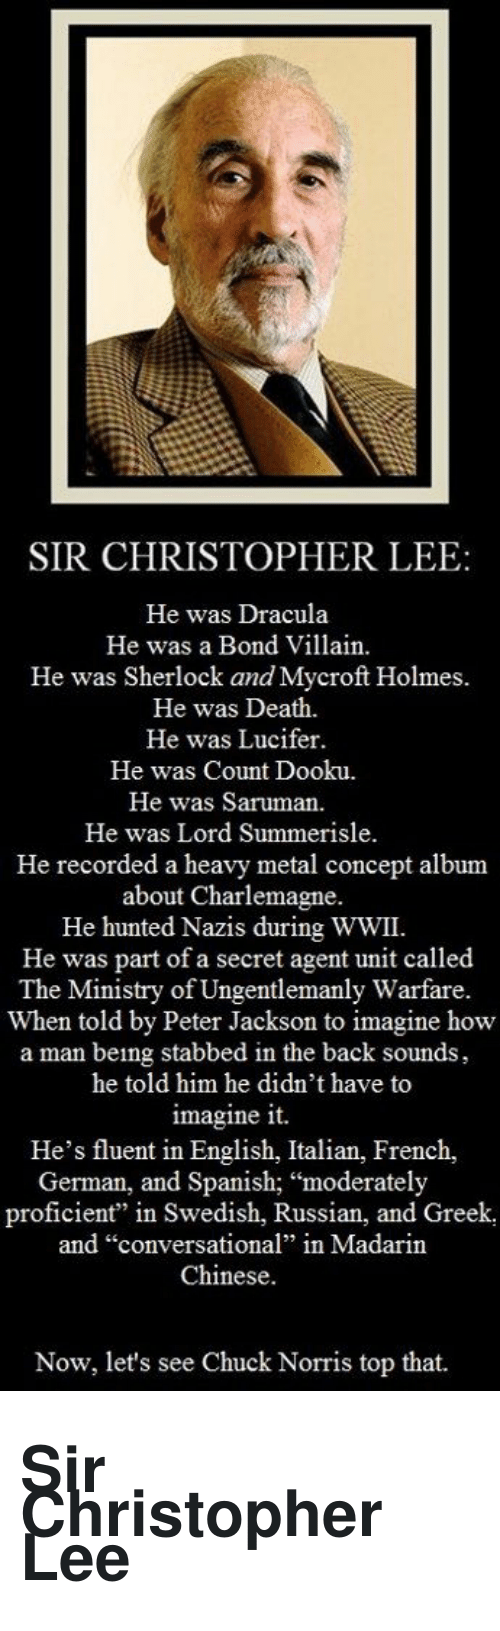 """Chuck Norris, Spanish, and Lucifer: SIR CHRISTOPHER LEE  He was Dracula  He was a Bond Villain  He was Sherlock and Mycroft Holmes.  He was Death.  He was Lucifer.  He was Count Dooku.  He was Saruman  He was Lord Summerisle.  He recorded a heavy metal concept album  about Charlemagne.  He hunted Nazis during WWII.  He was part of a secret agent unit called  The Ministry of Ungentlemanly Warfare.  When told by Peter Jackson to imagine how  a man being stabbed in the back sounds,  he told him he didn't have to  imagine it.  He's fluent in English, Italian, French,  German, and Spanish; """"moderately  proficient"""" in Swedish, Russian, and Greek,  and """"conversational"""" in Madarin  Chinese.  Now, let's see Chuck Norris top that. <h1><span>Sir Christopher Lee</span></h1>"""